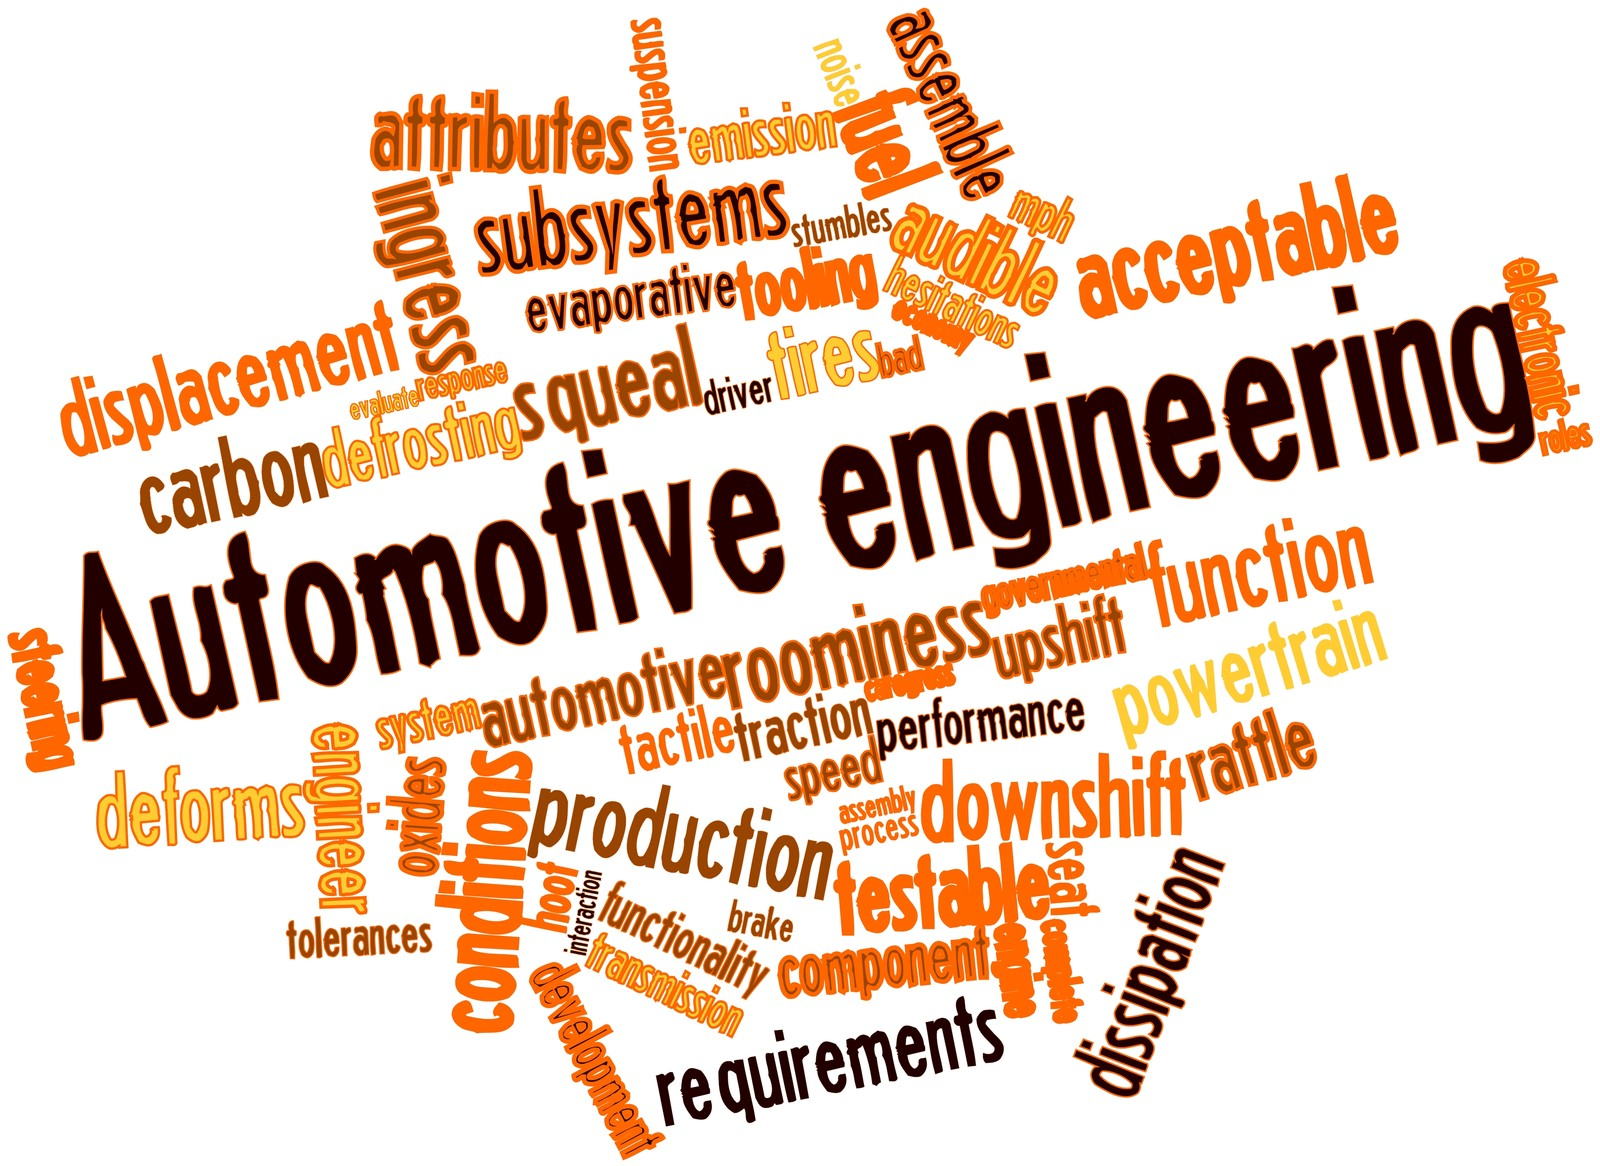 Information about Automotive Engineering